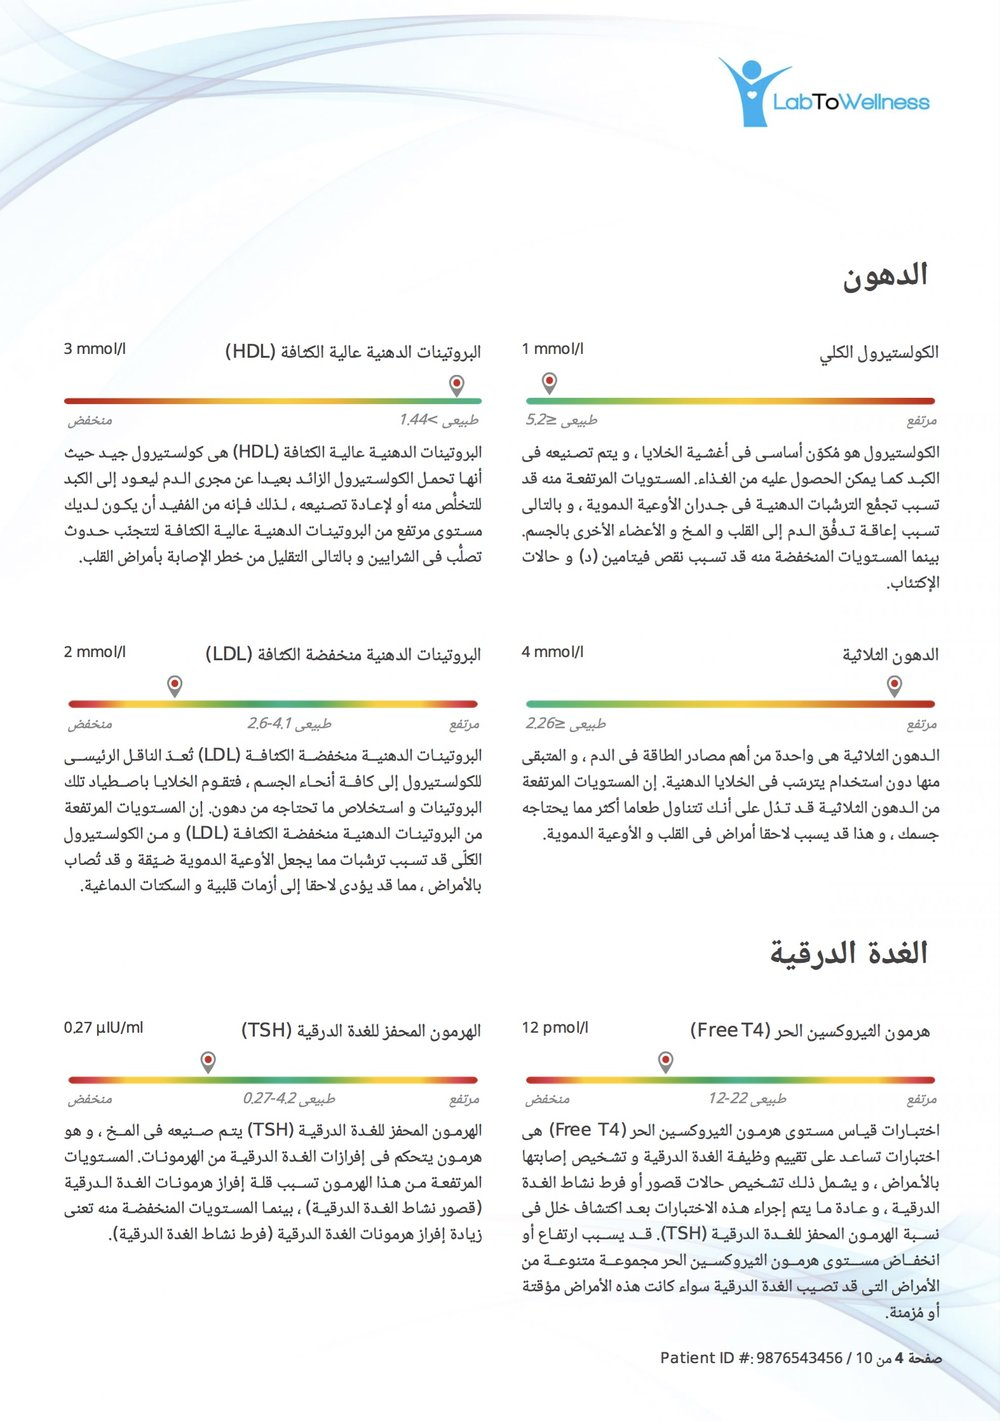 LabToWellness laboratory testing report in Arabic